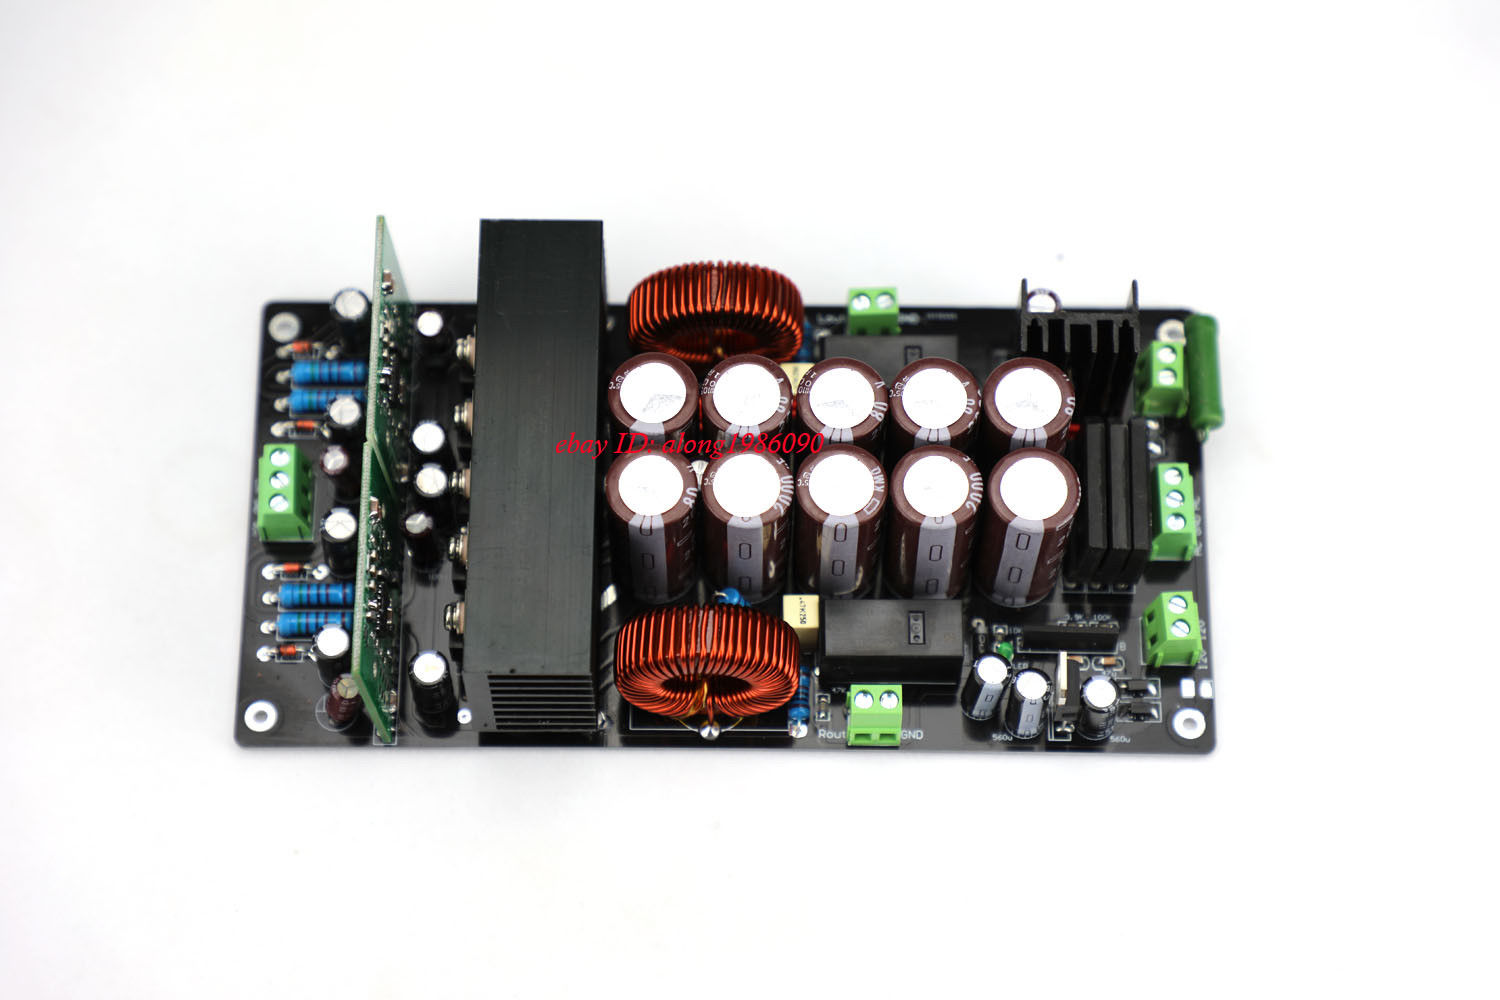 GZLOZONE High Voltage Version IRS2092 Class D Power Amplifier Board 800W 800W L10 26